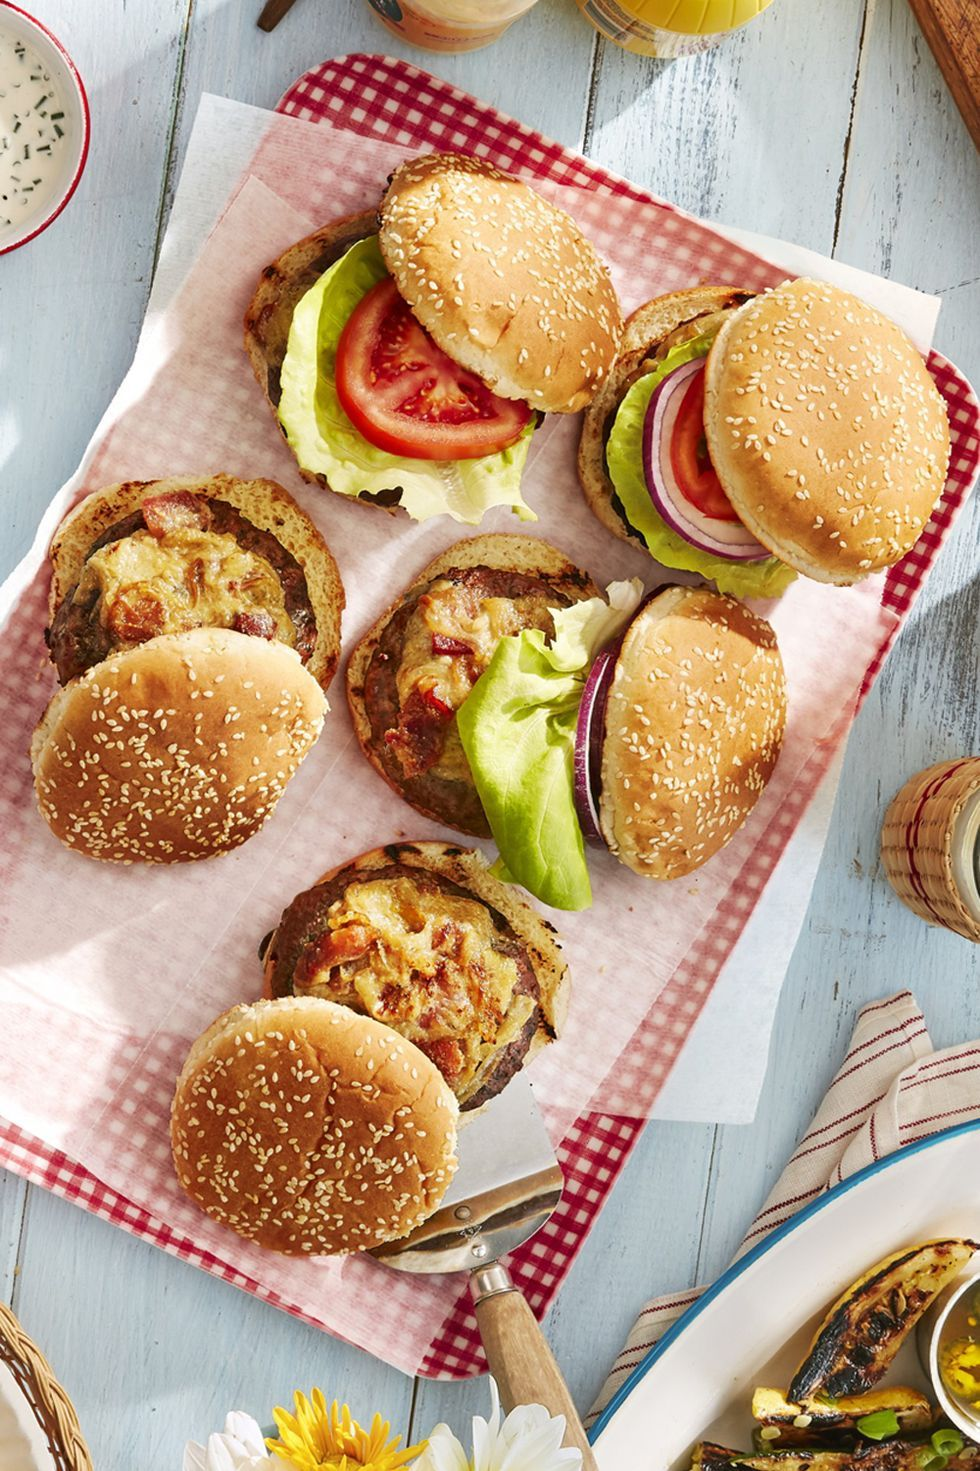 How to Grill and Cook Burgers - Best Burger Instructions